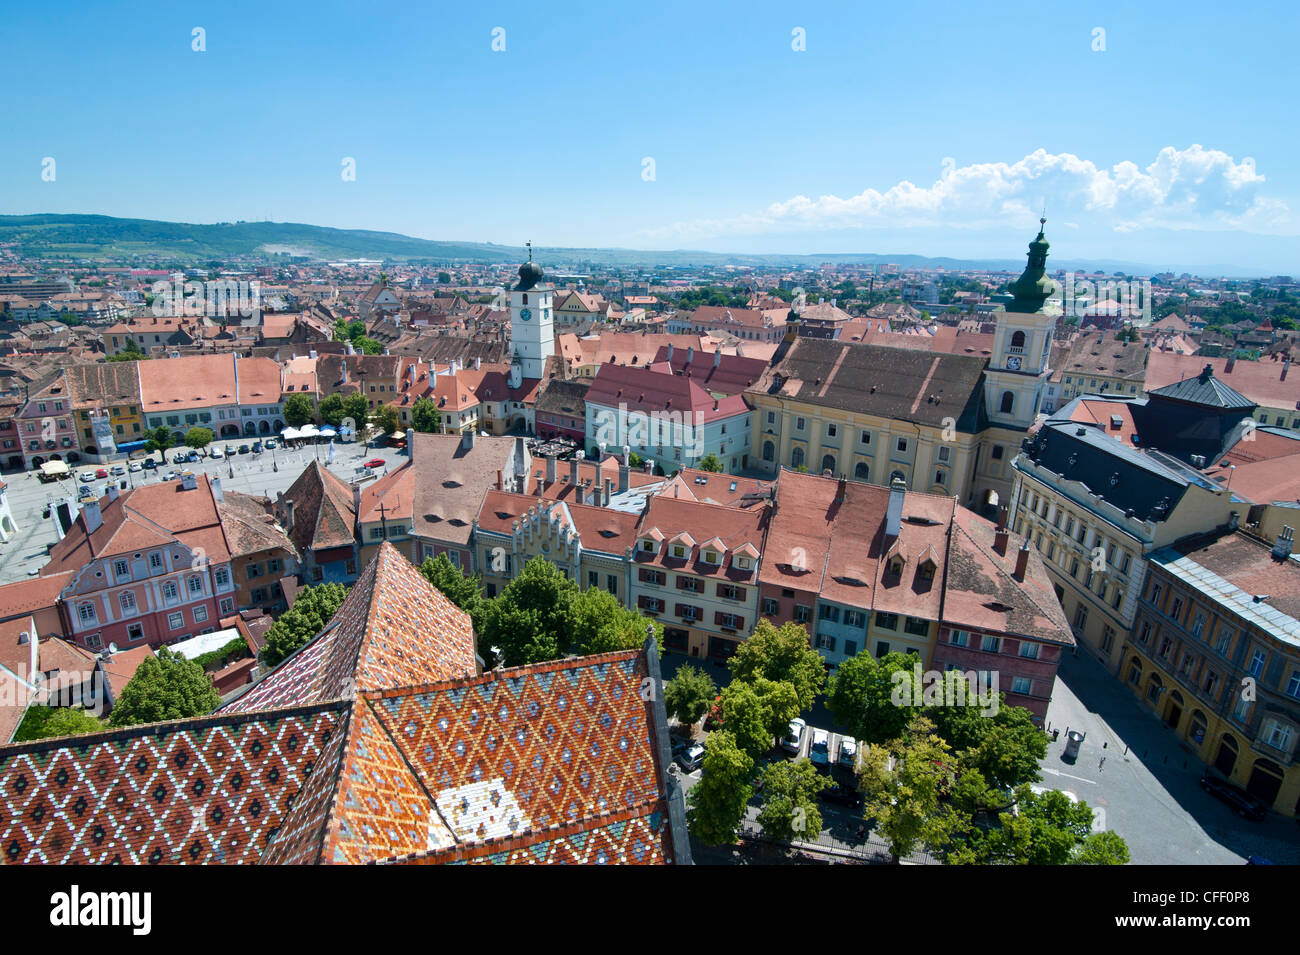 City skyline, Sibiu, Romania, Europe - Stock Image